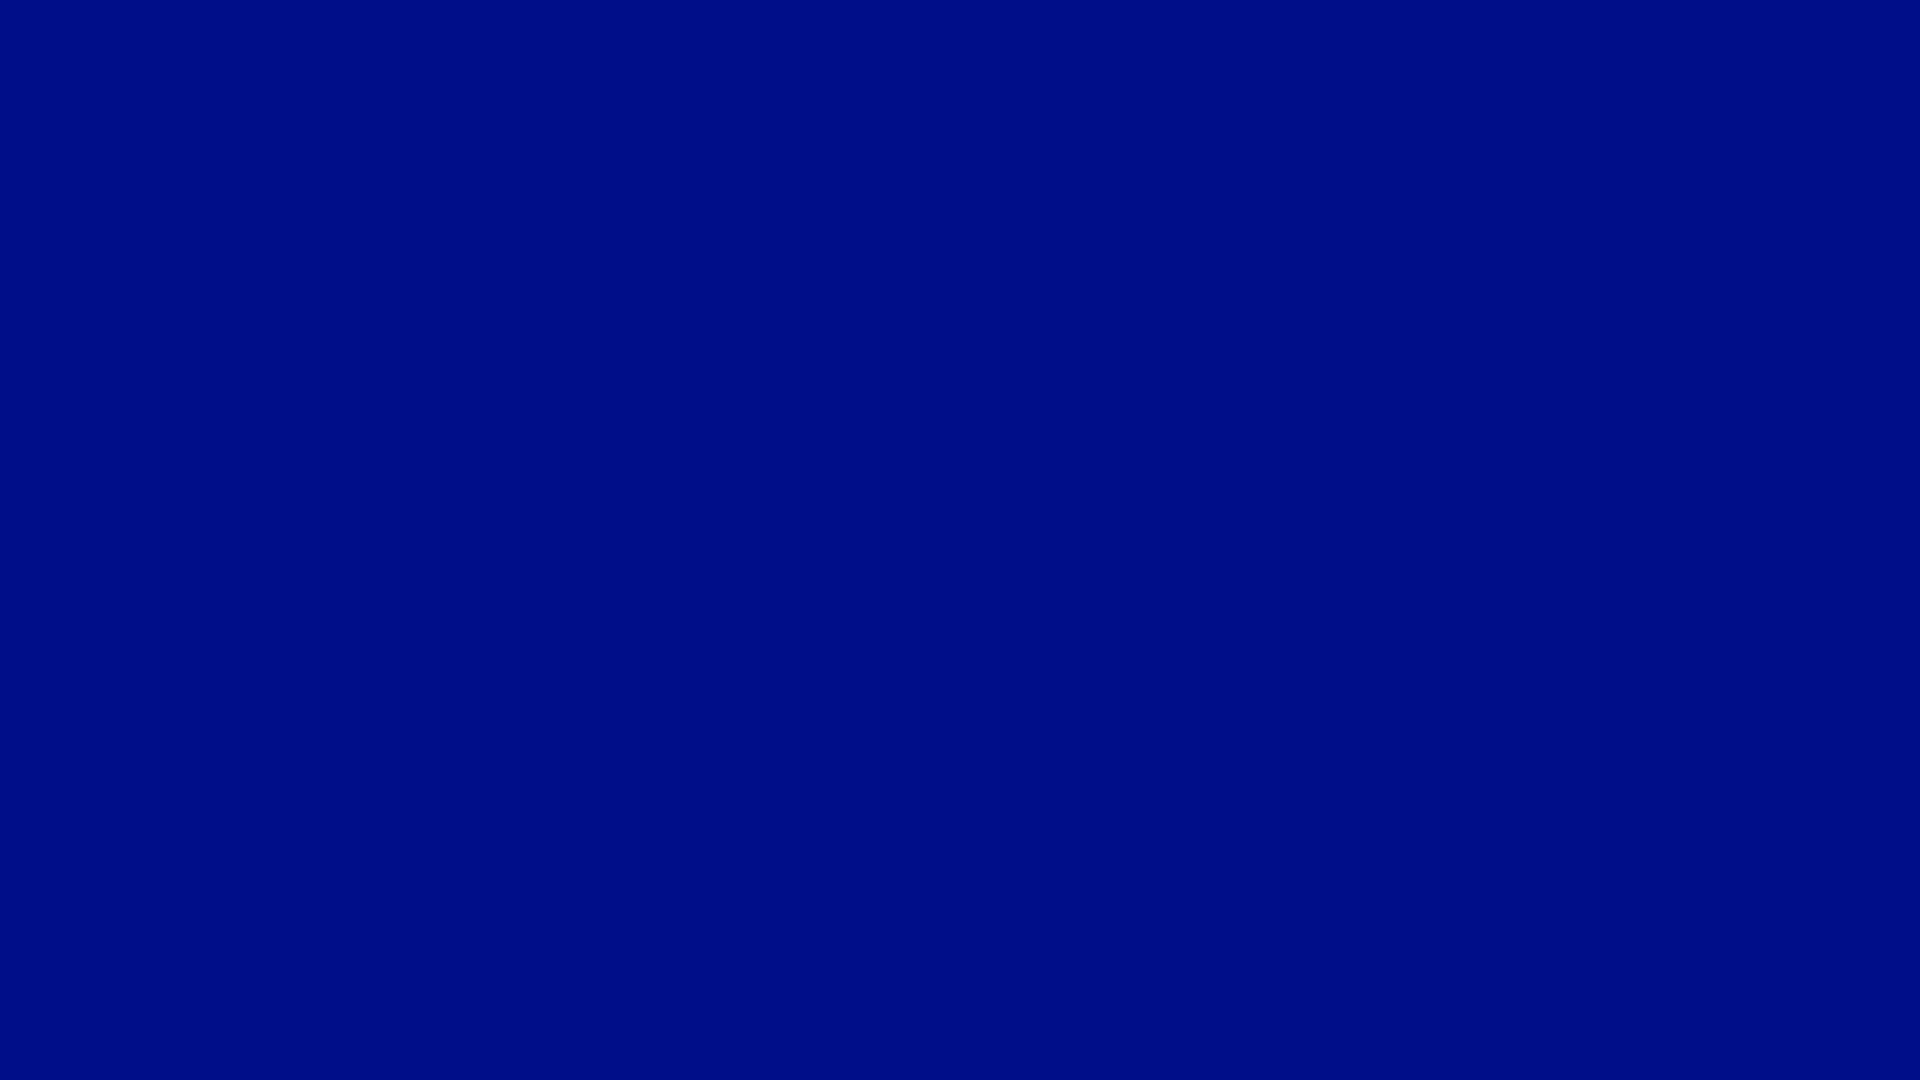 1920x1080 Phthalo Blue Solid Color Background